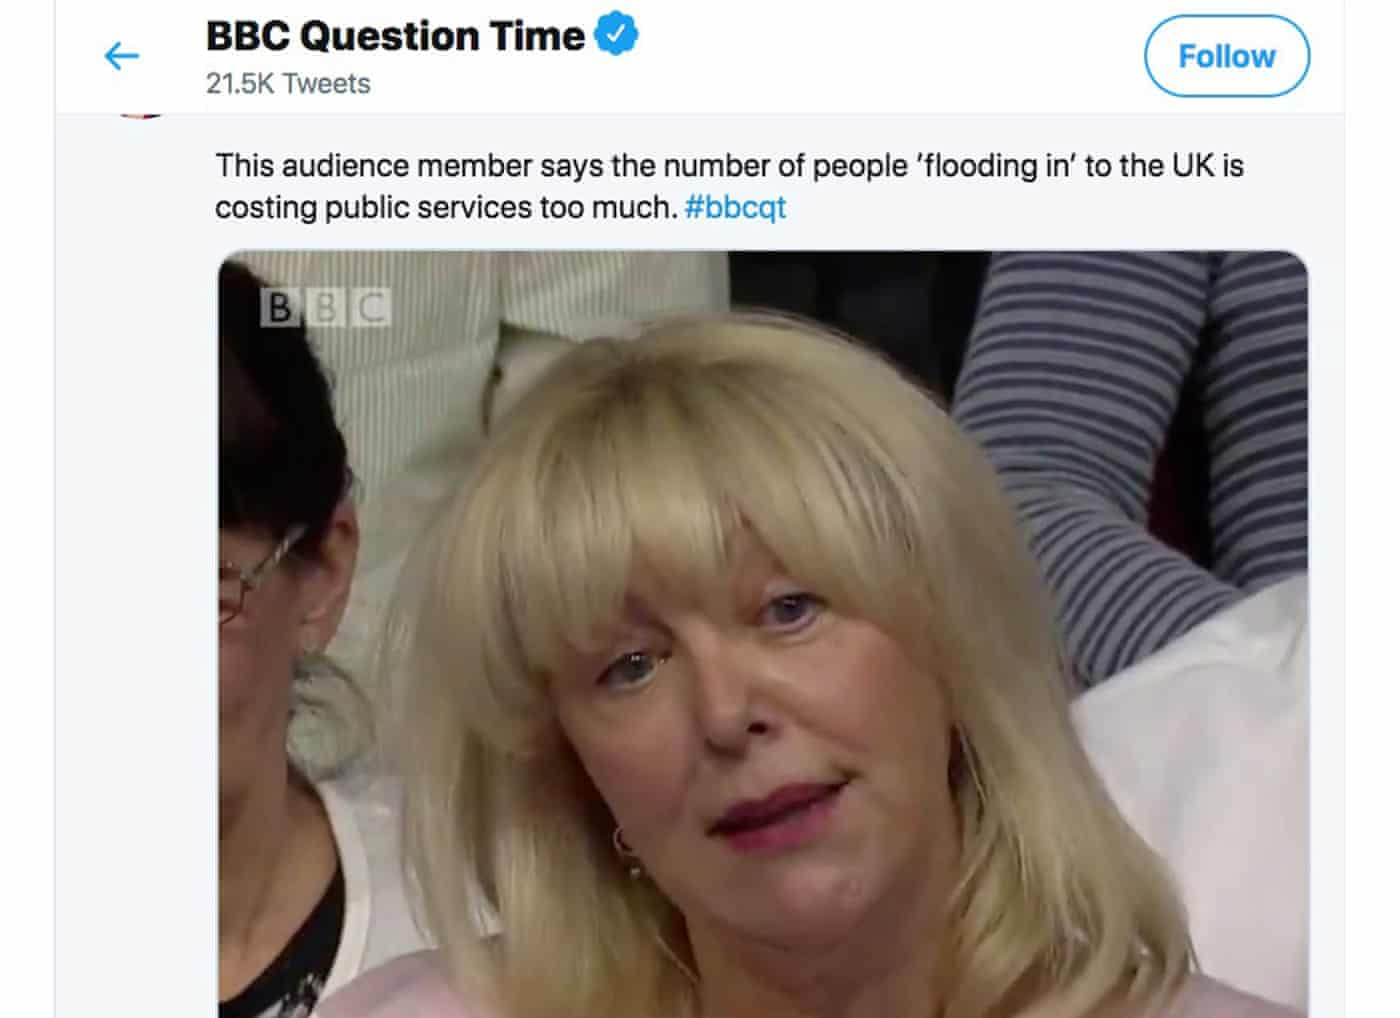 The BBC normalised racism last night, pure and simple